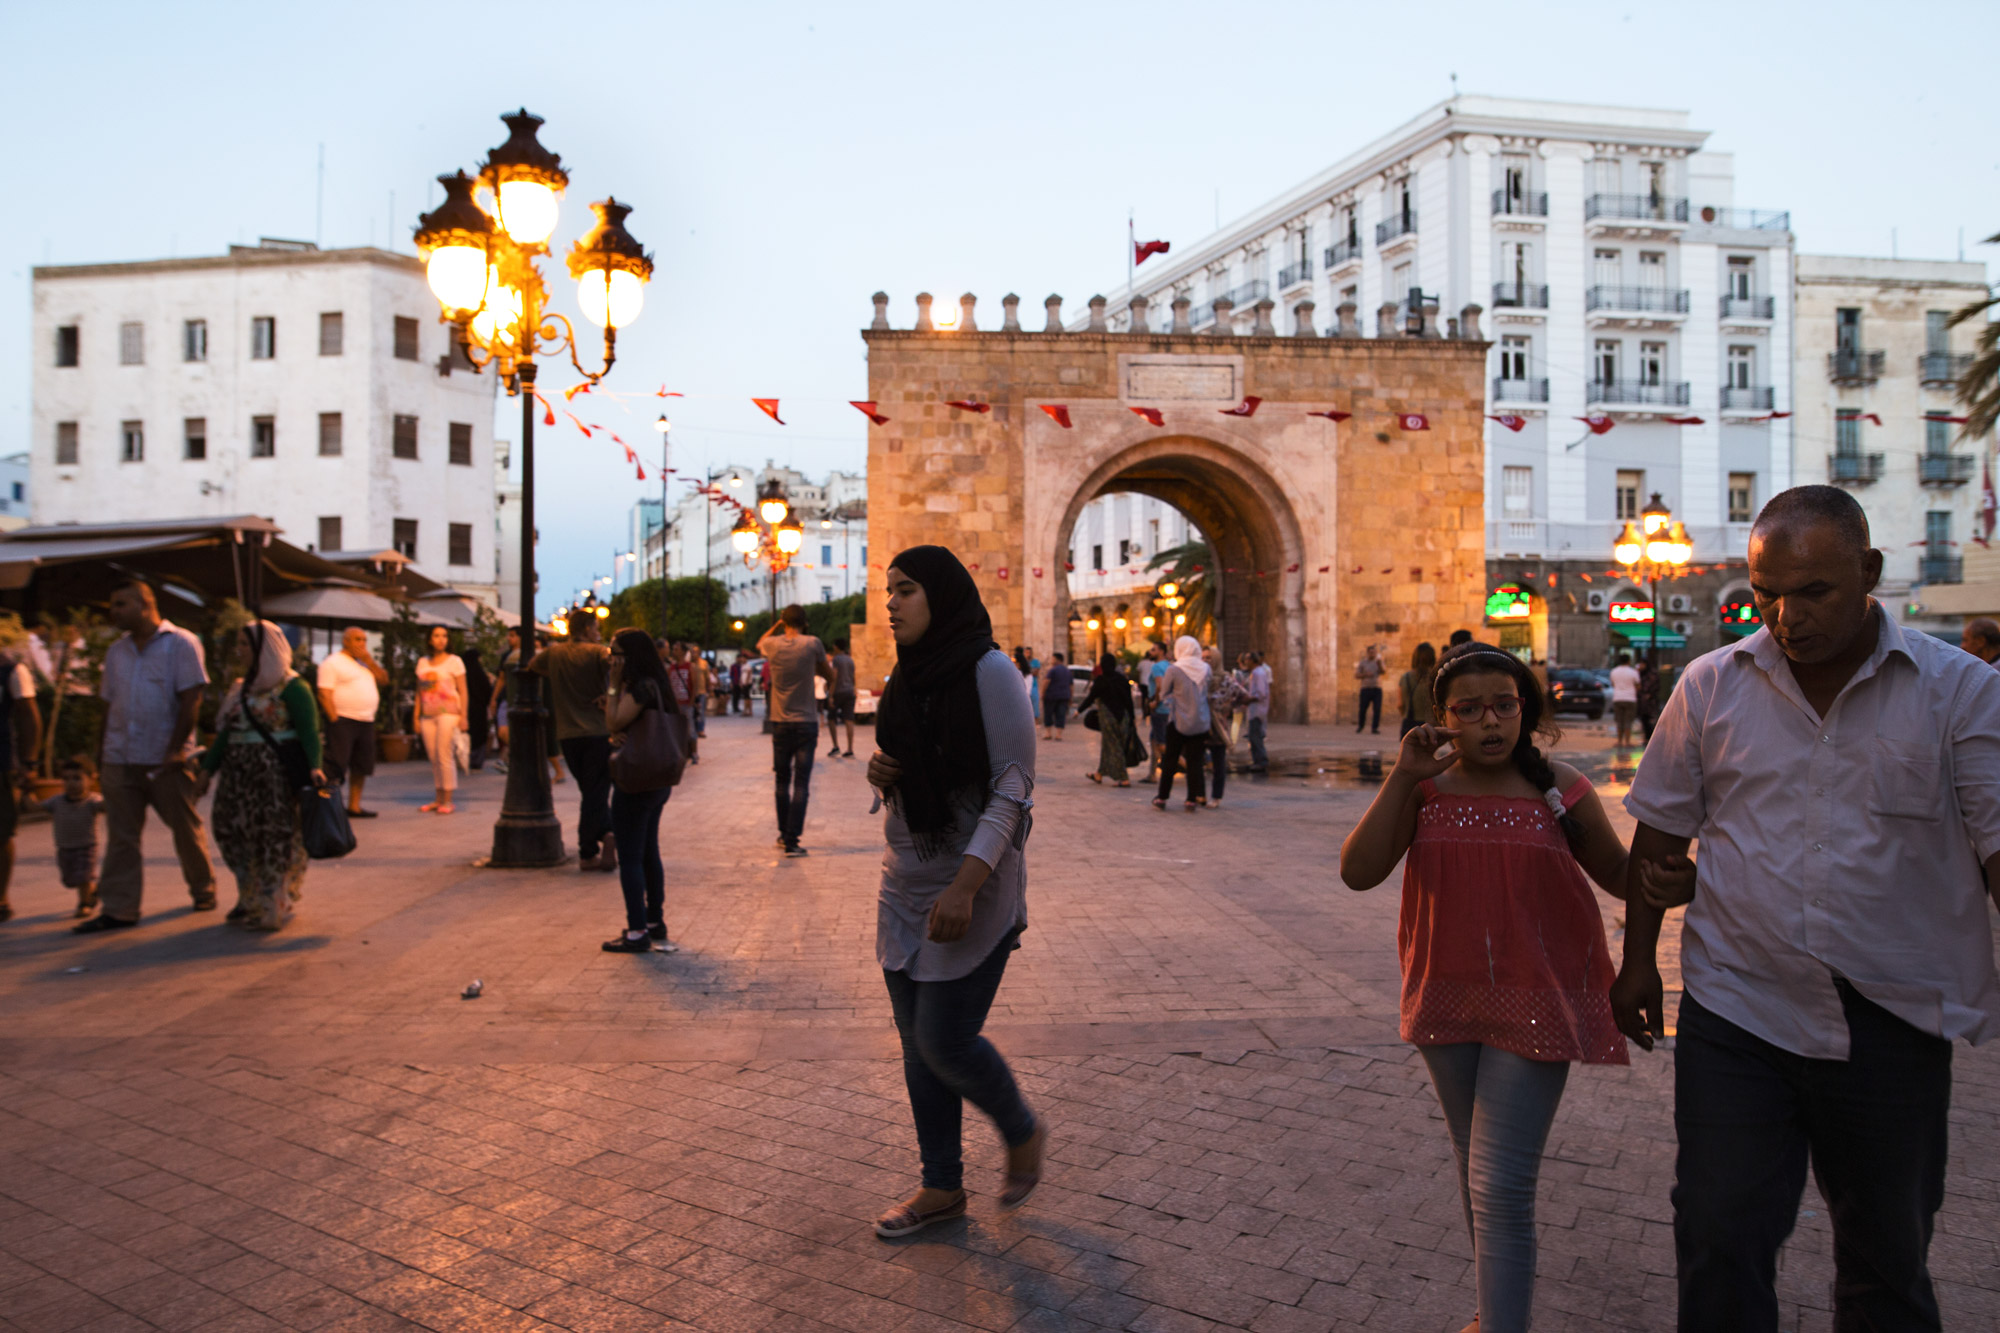 Tunisia has struggled with corruption since the revolution in 2011.